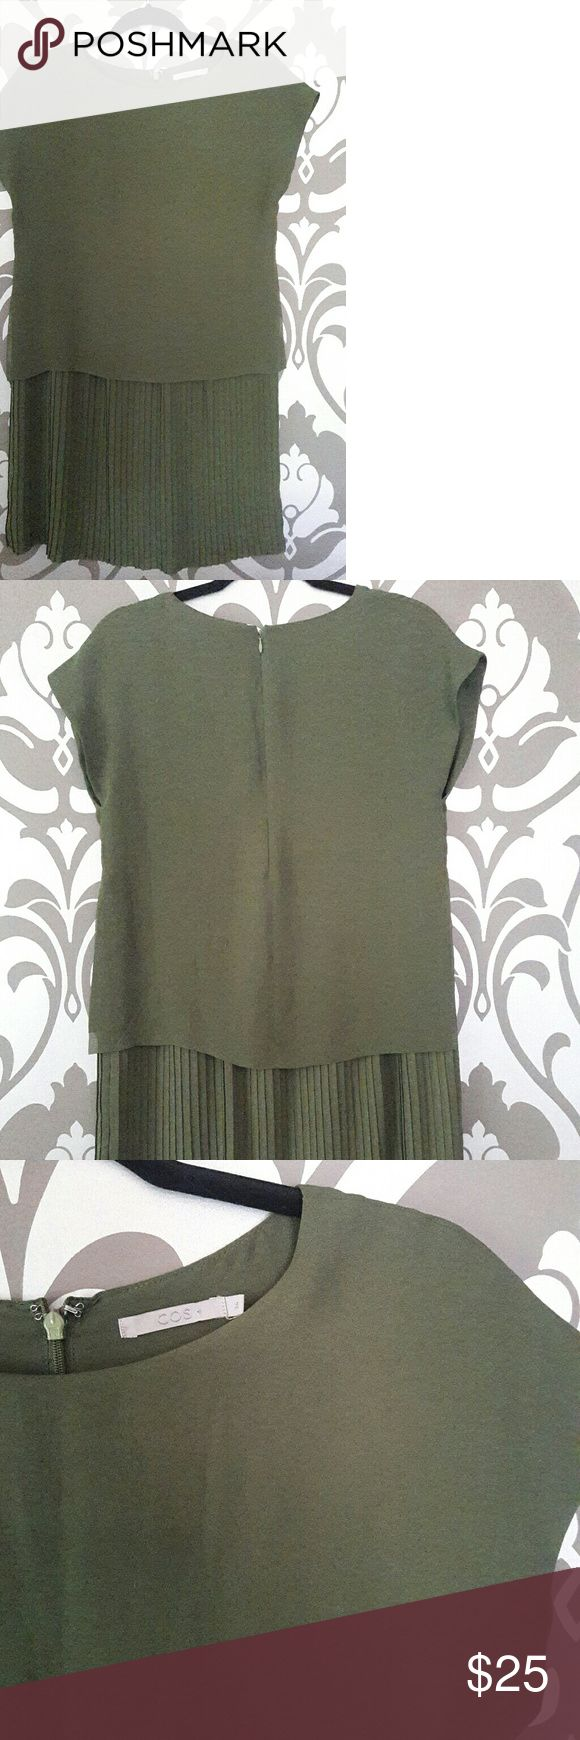 COS Olive Green Tunic Dress COS dress can also be worn as an oversized blouse/ tunic / loosefit. The dress has a hidden zipper in the bag. Size 36 COS Dresses Midi